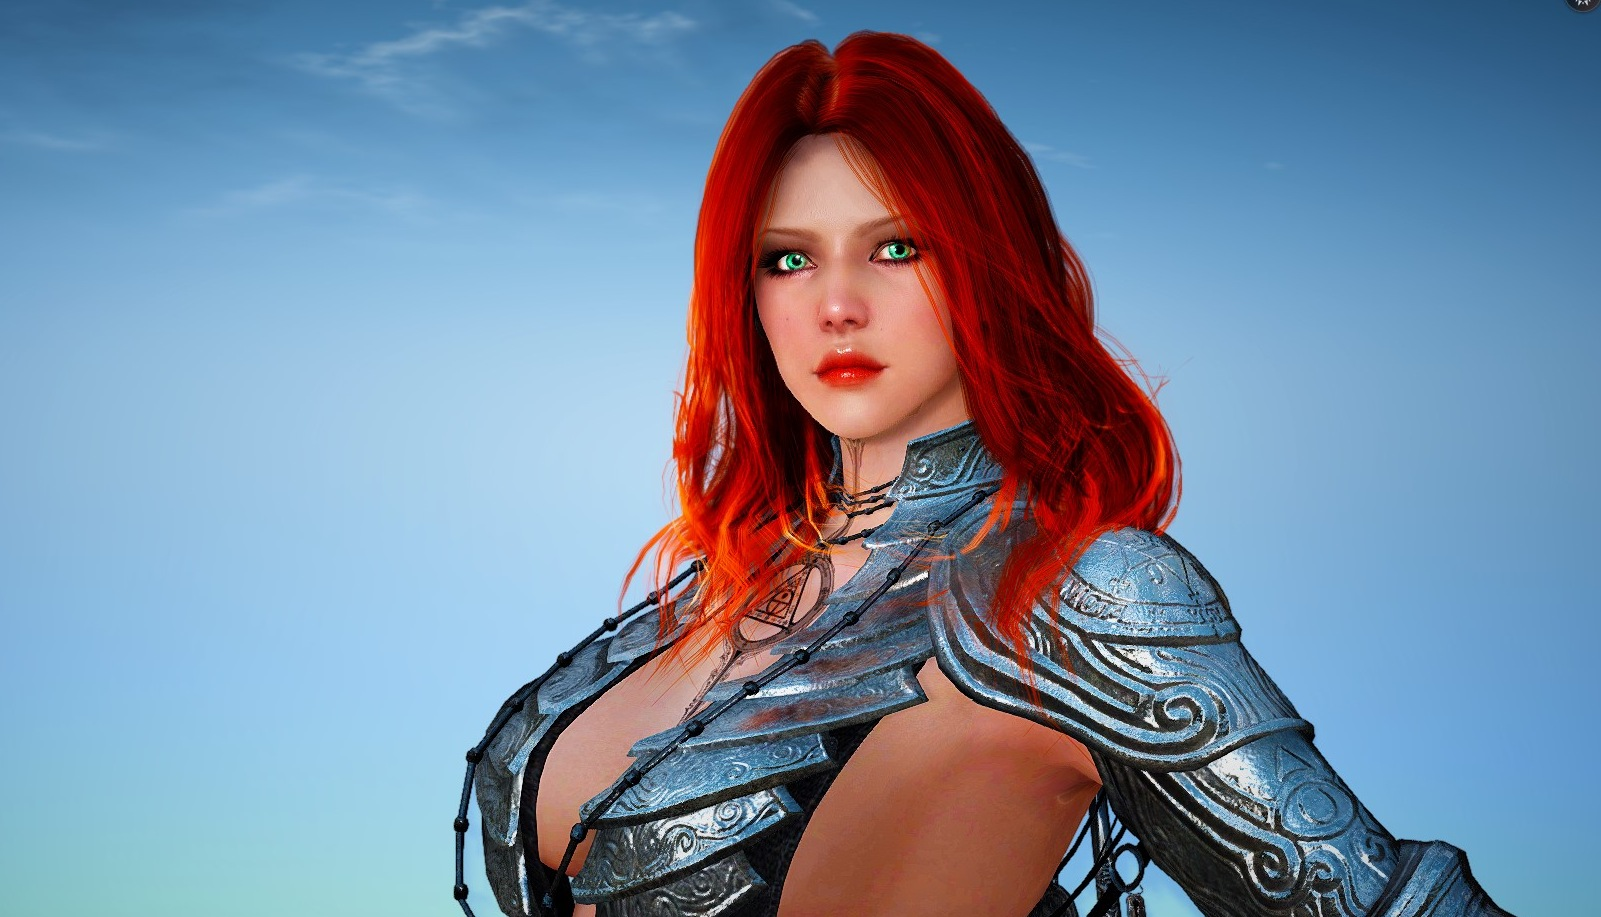 want to try black desert online? here are 500 7 day codes for you